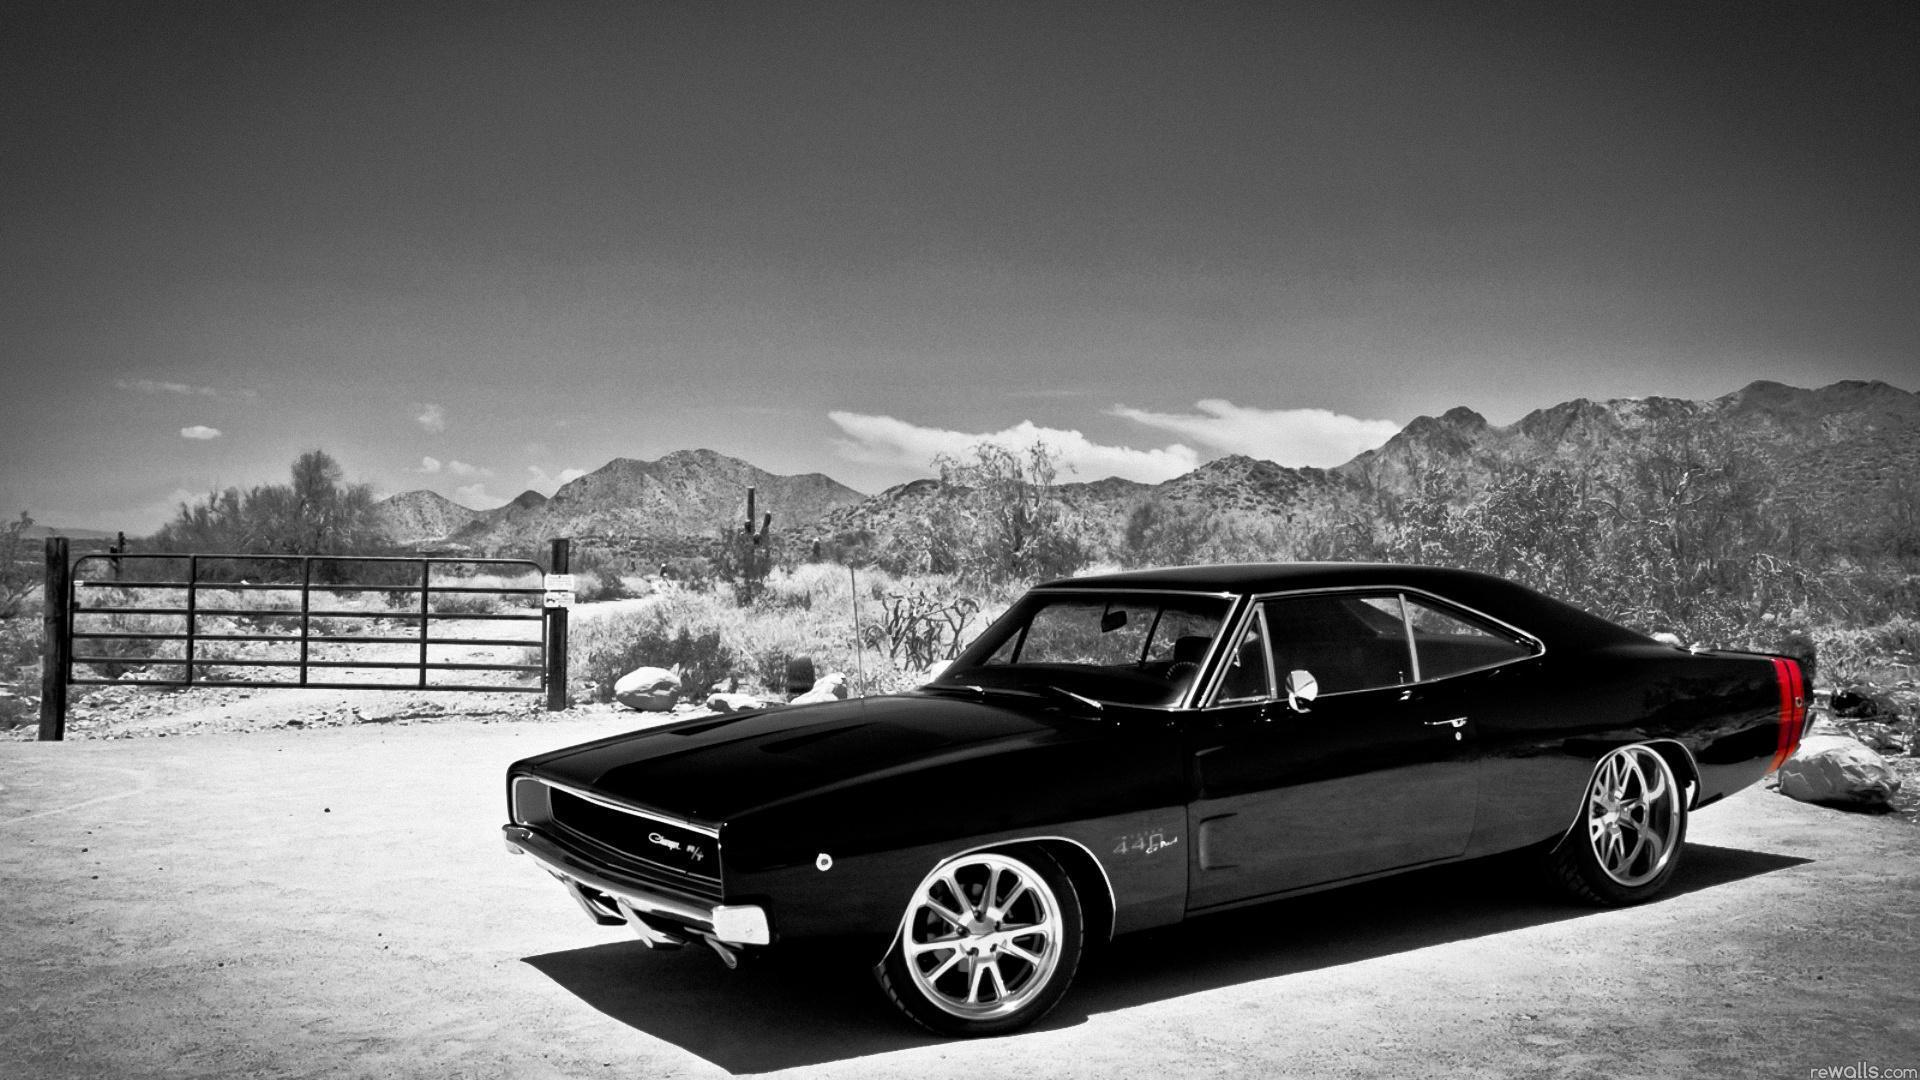 new wallpapers muscle car - photo #7